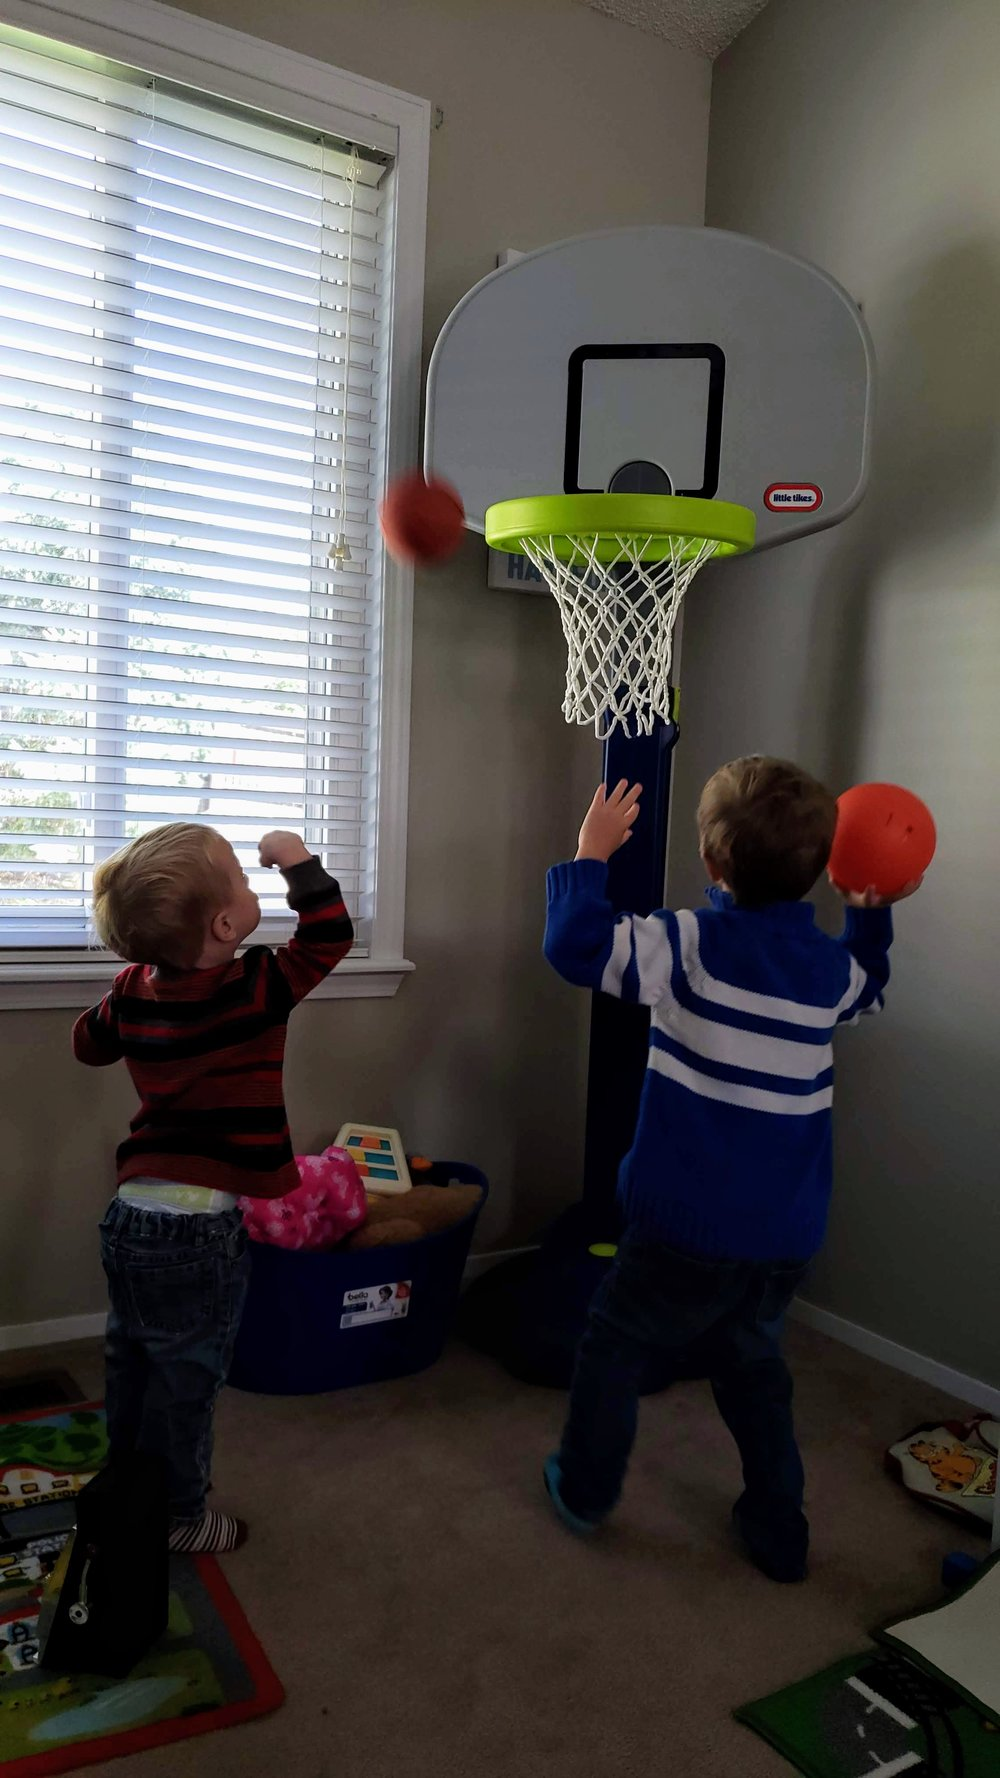 Most of the time, the playroom is a basketball court. #boyswillbeboys   Basketball hoop